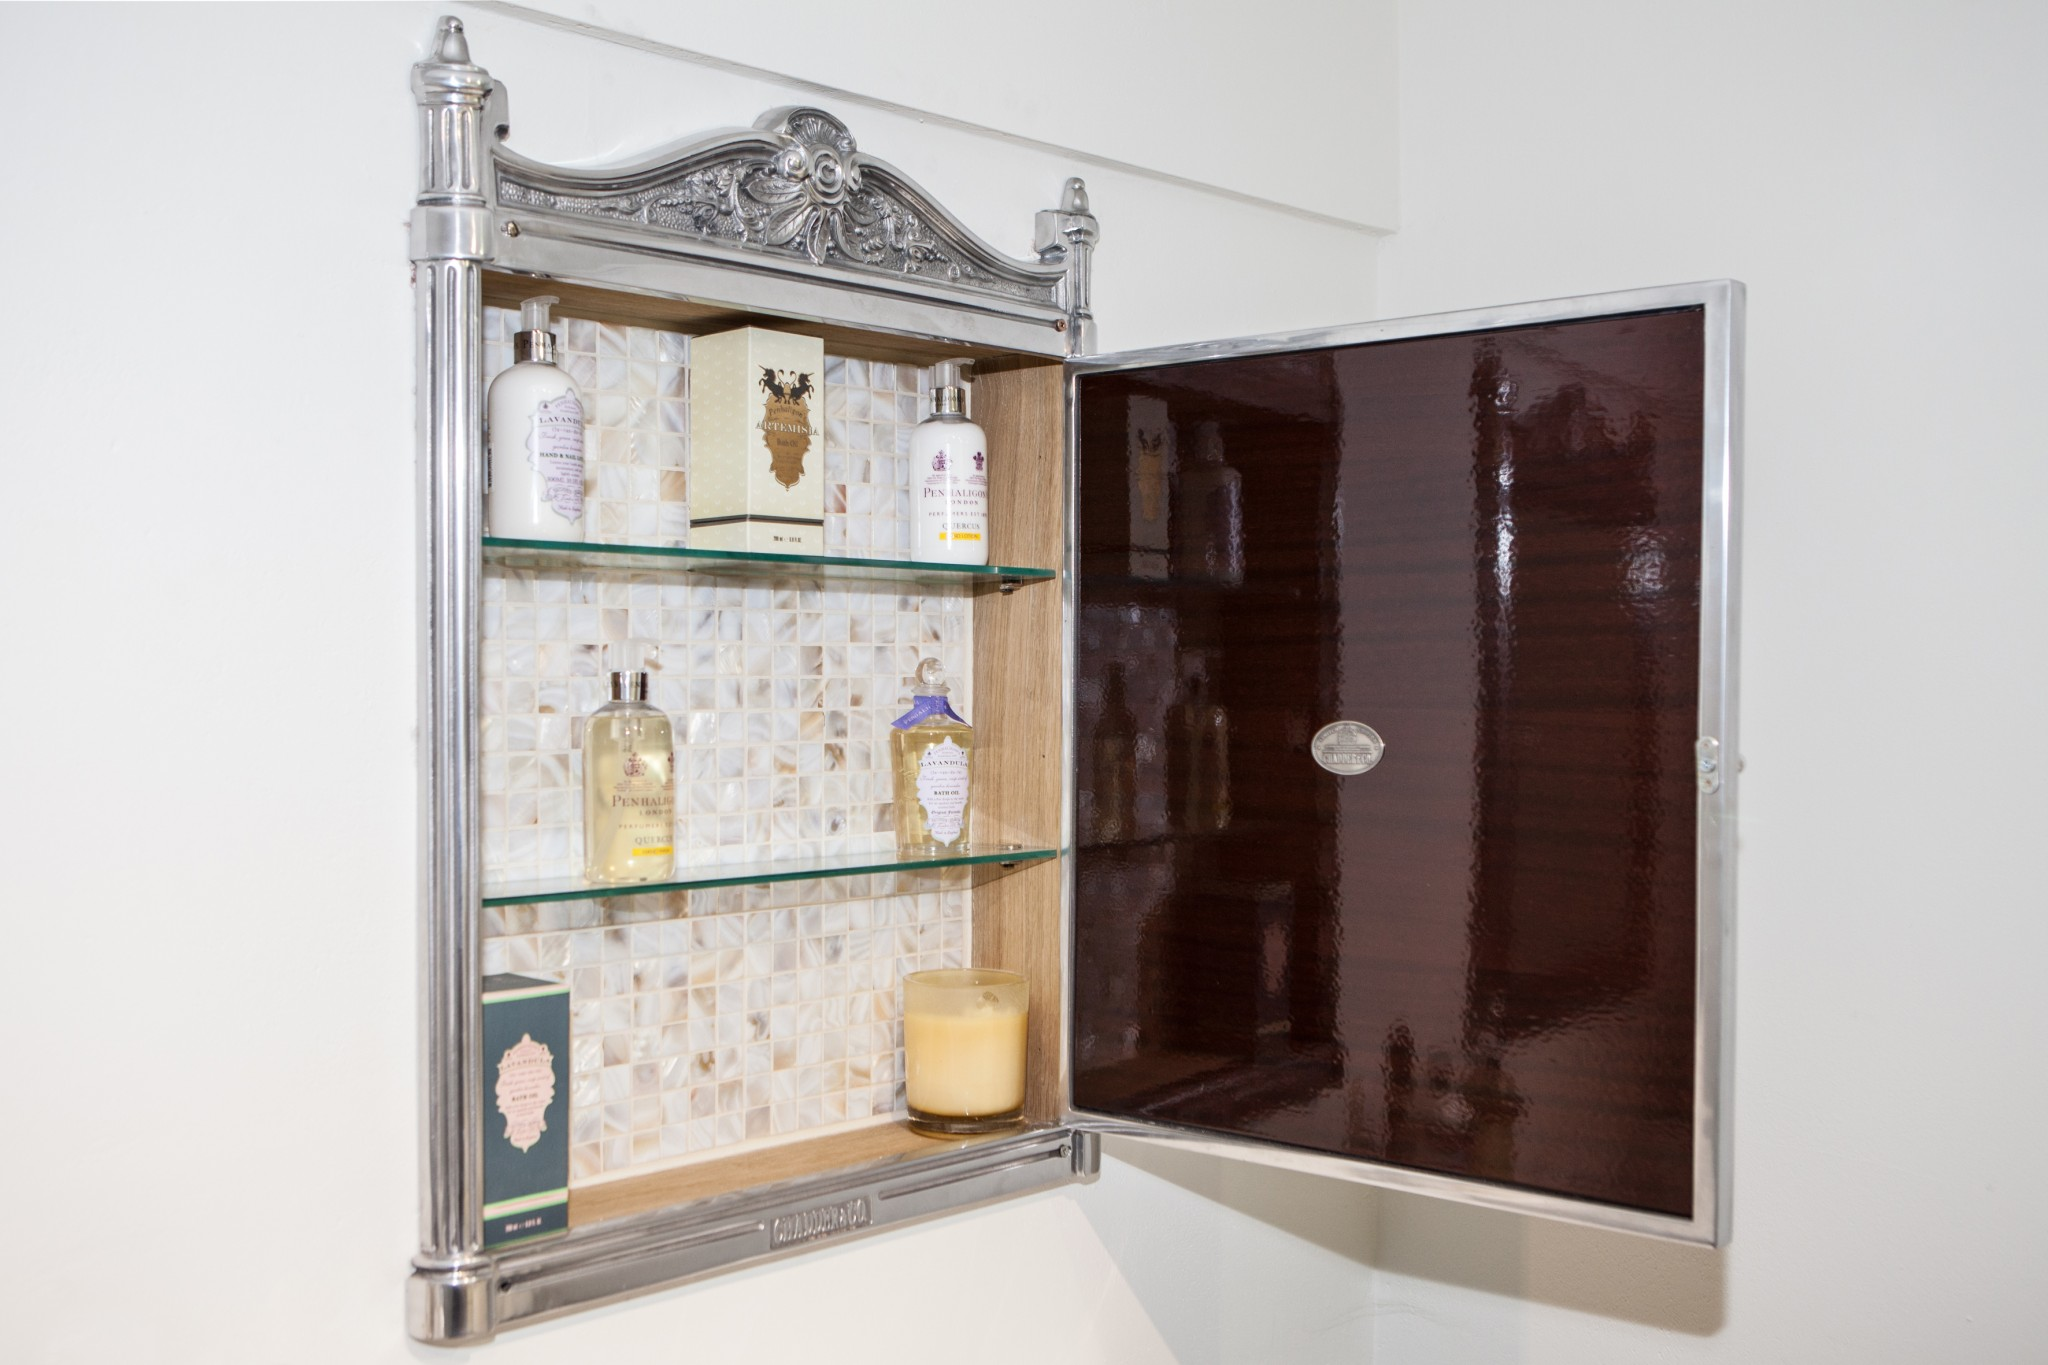 Blenheim in wall cabinet chadder co - Bathroom storage mirrored cabinet ...